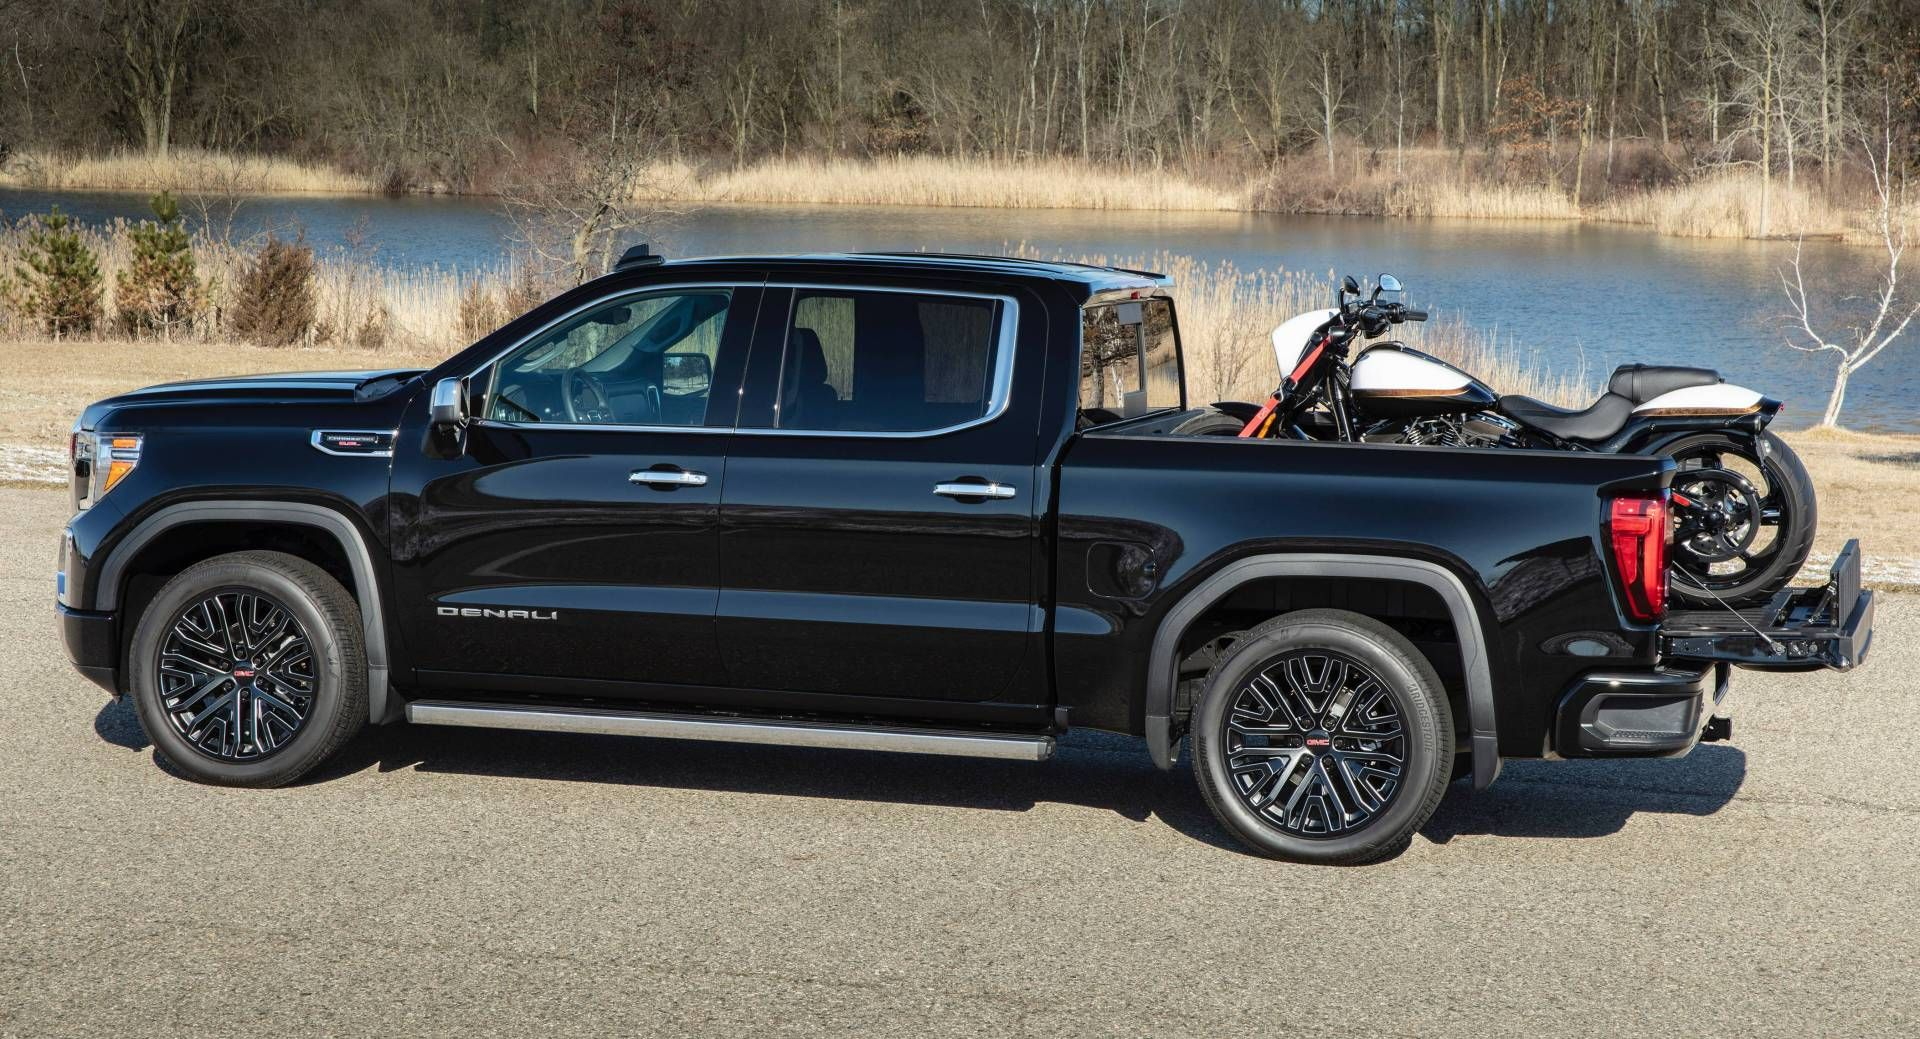 Gmc Adds Carbon Fiber Bed To 2019 Sierra 1500 Denali And At4 Carbonpro Editions Sierra 1500 Gmc Carbon Fiber